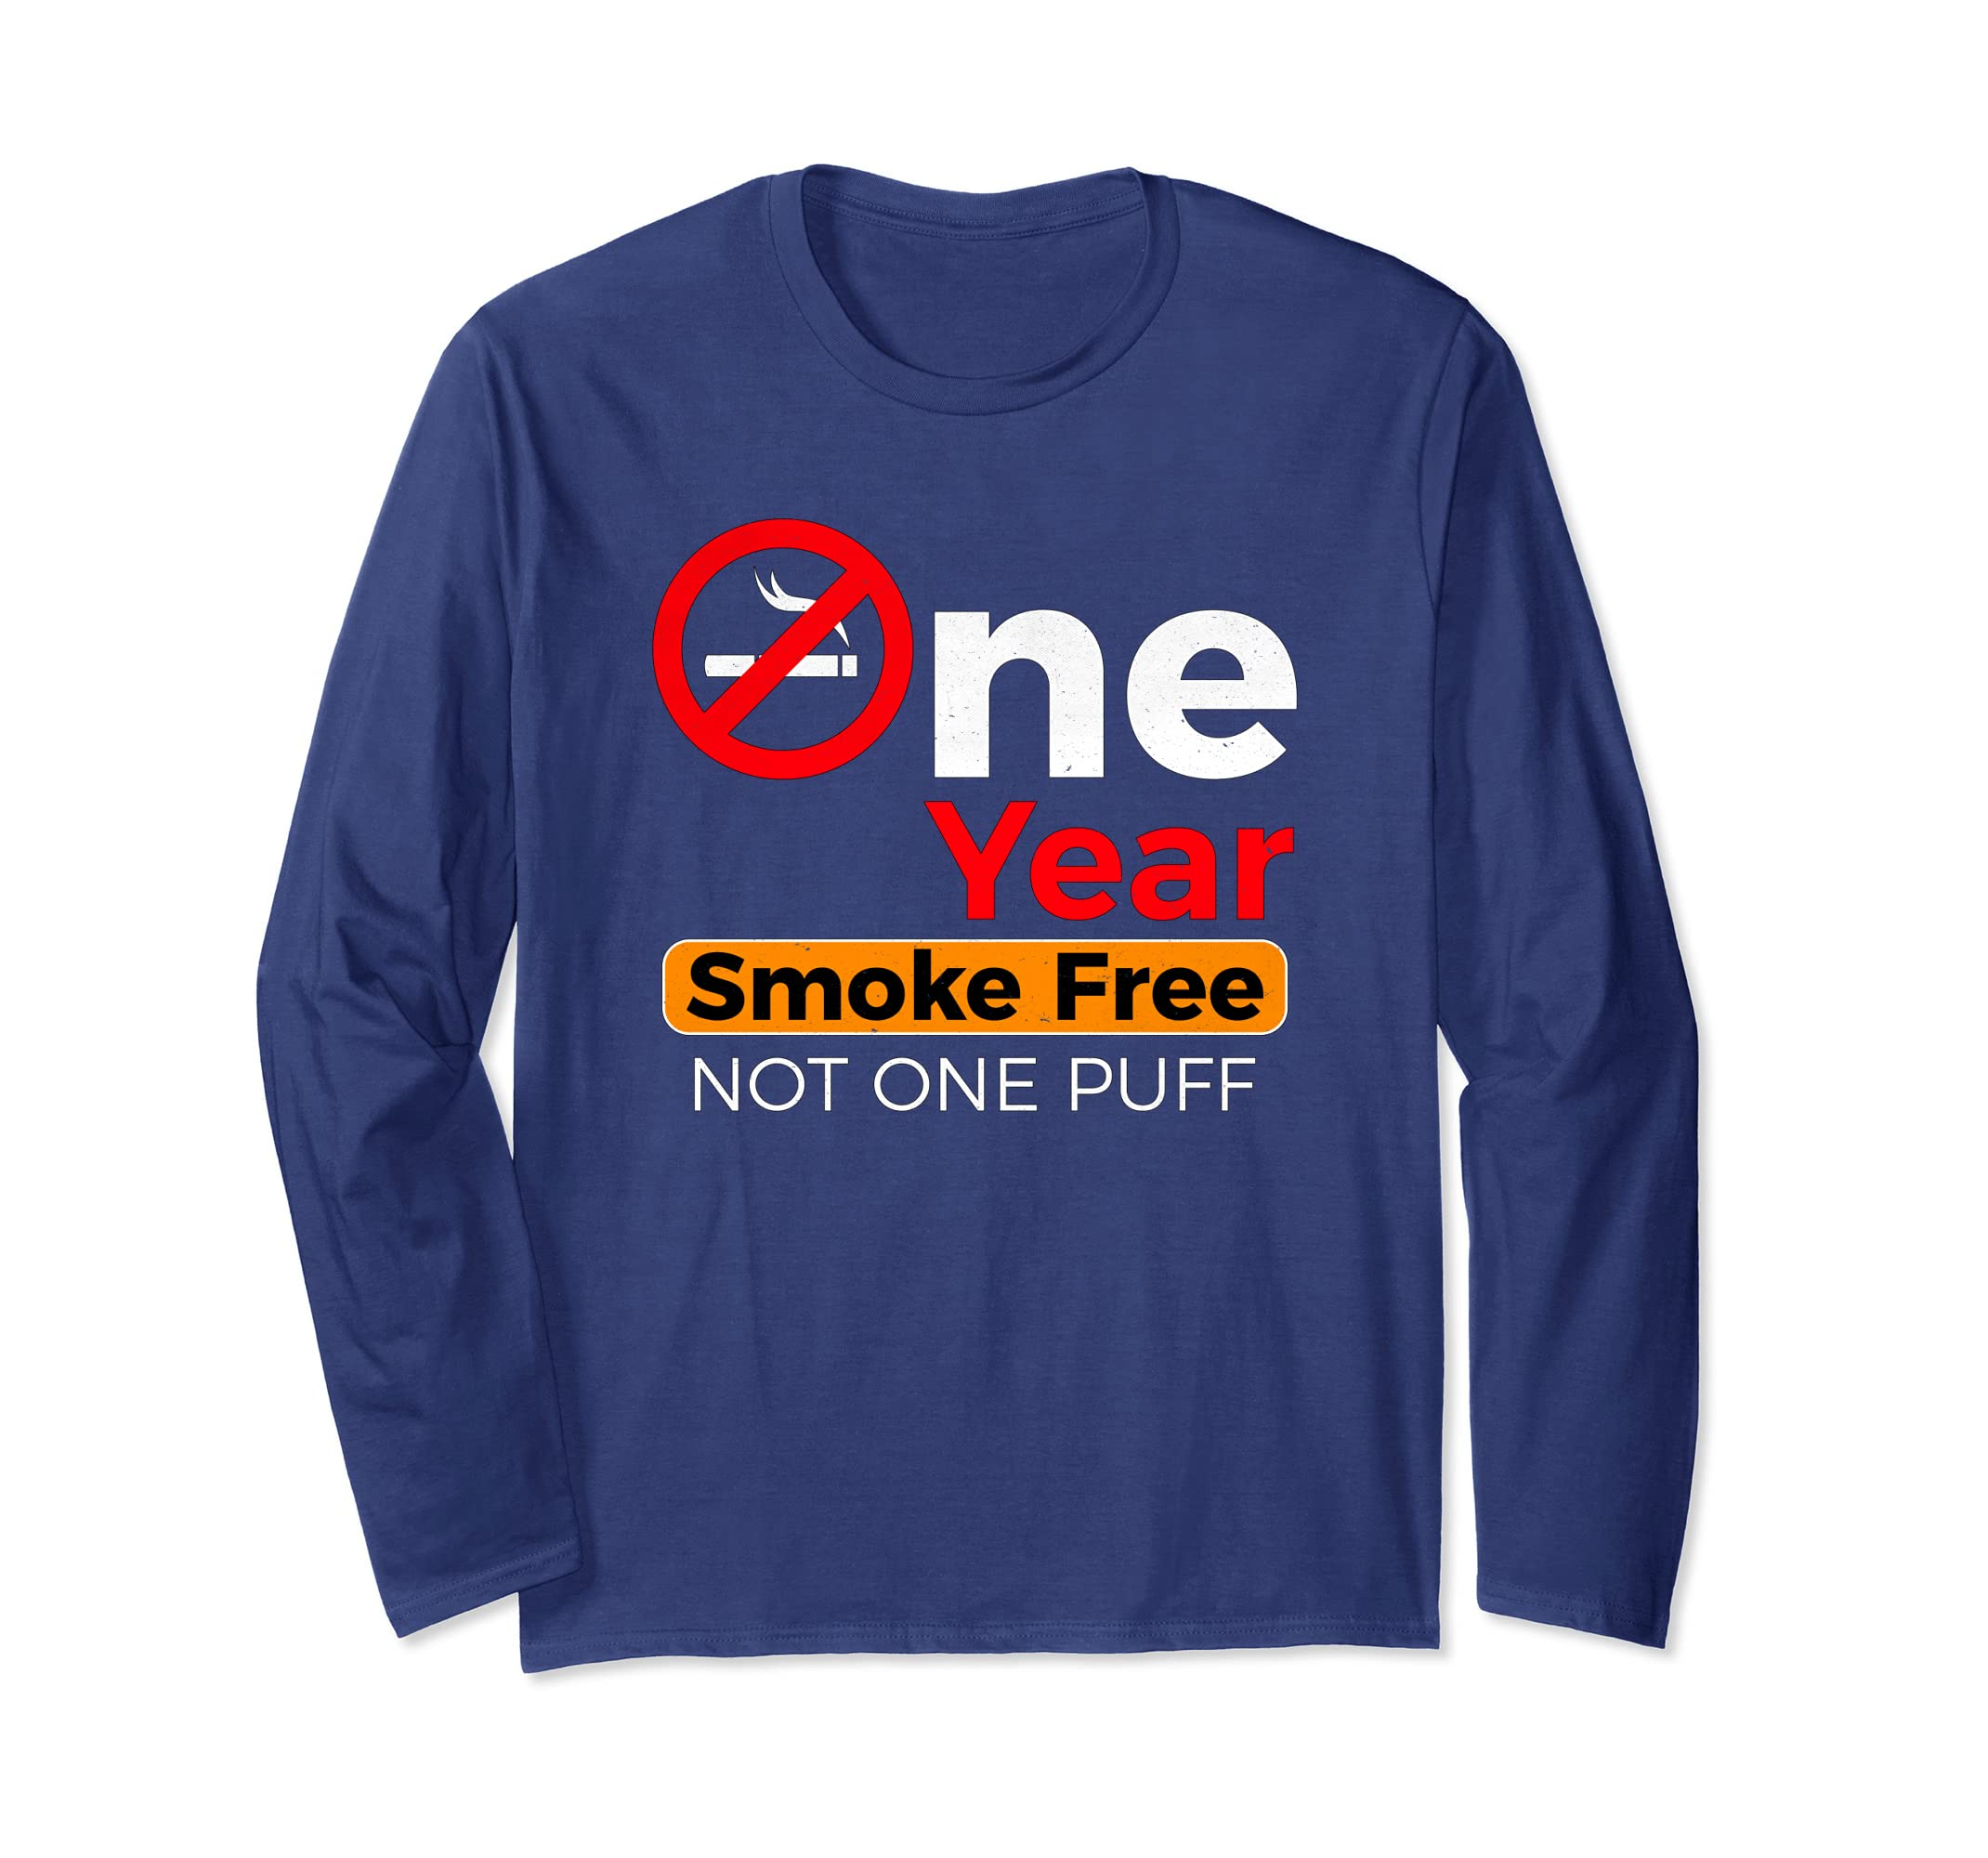 d10ad26079 Amazon.com: One Year No Smoking Anniversary Celebration Long Sleeve Tee:  Clothing